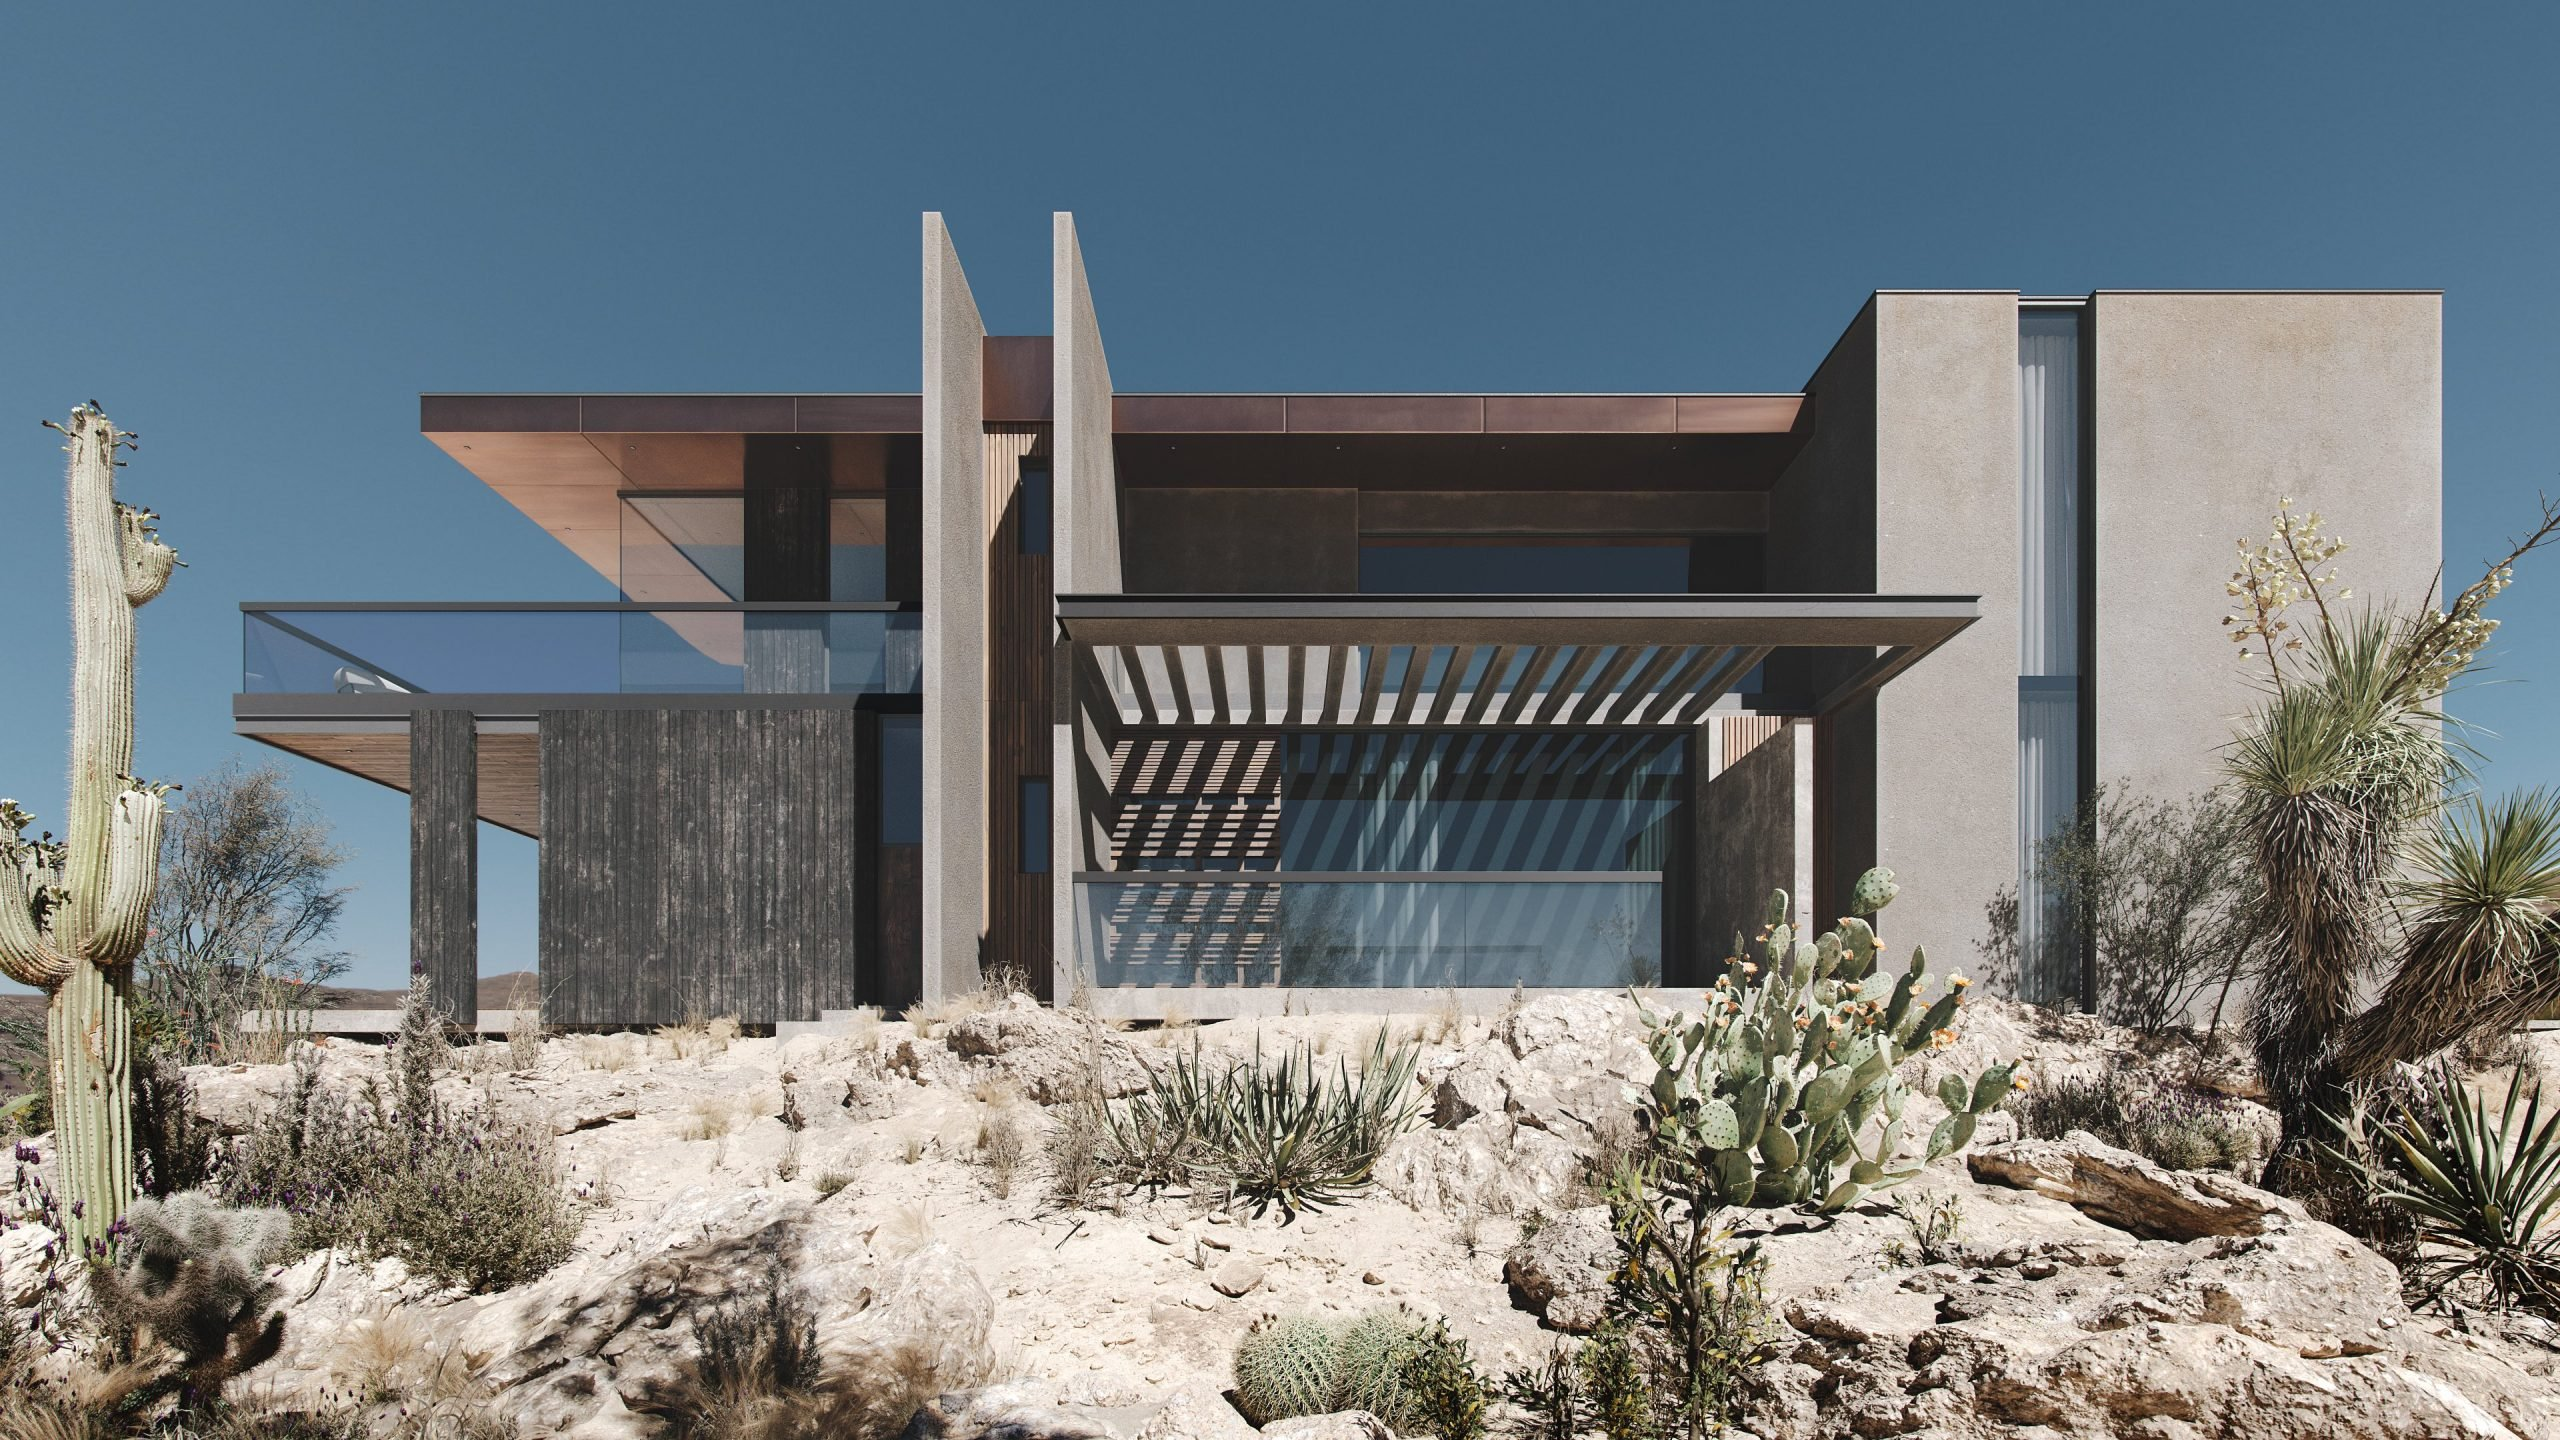 3D Visualization Showing a Cottage in the Desert Setting